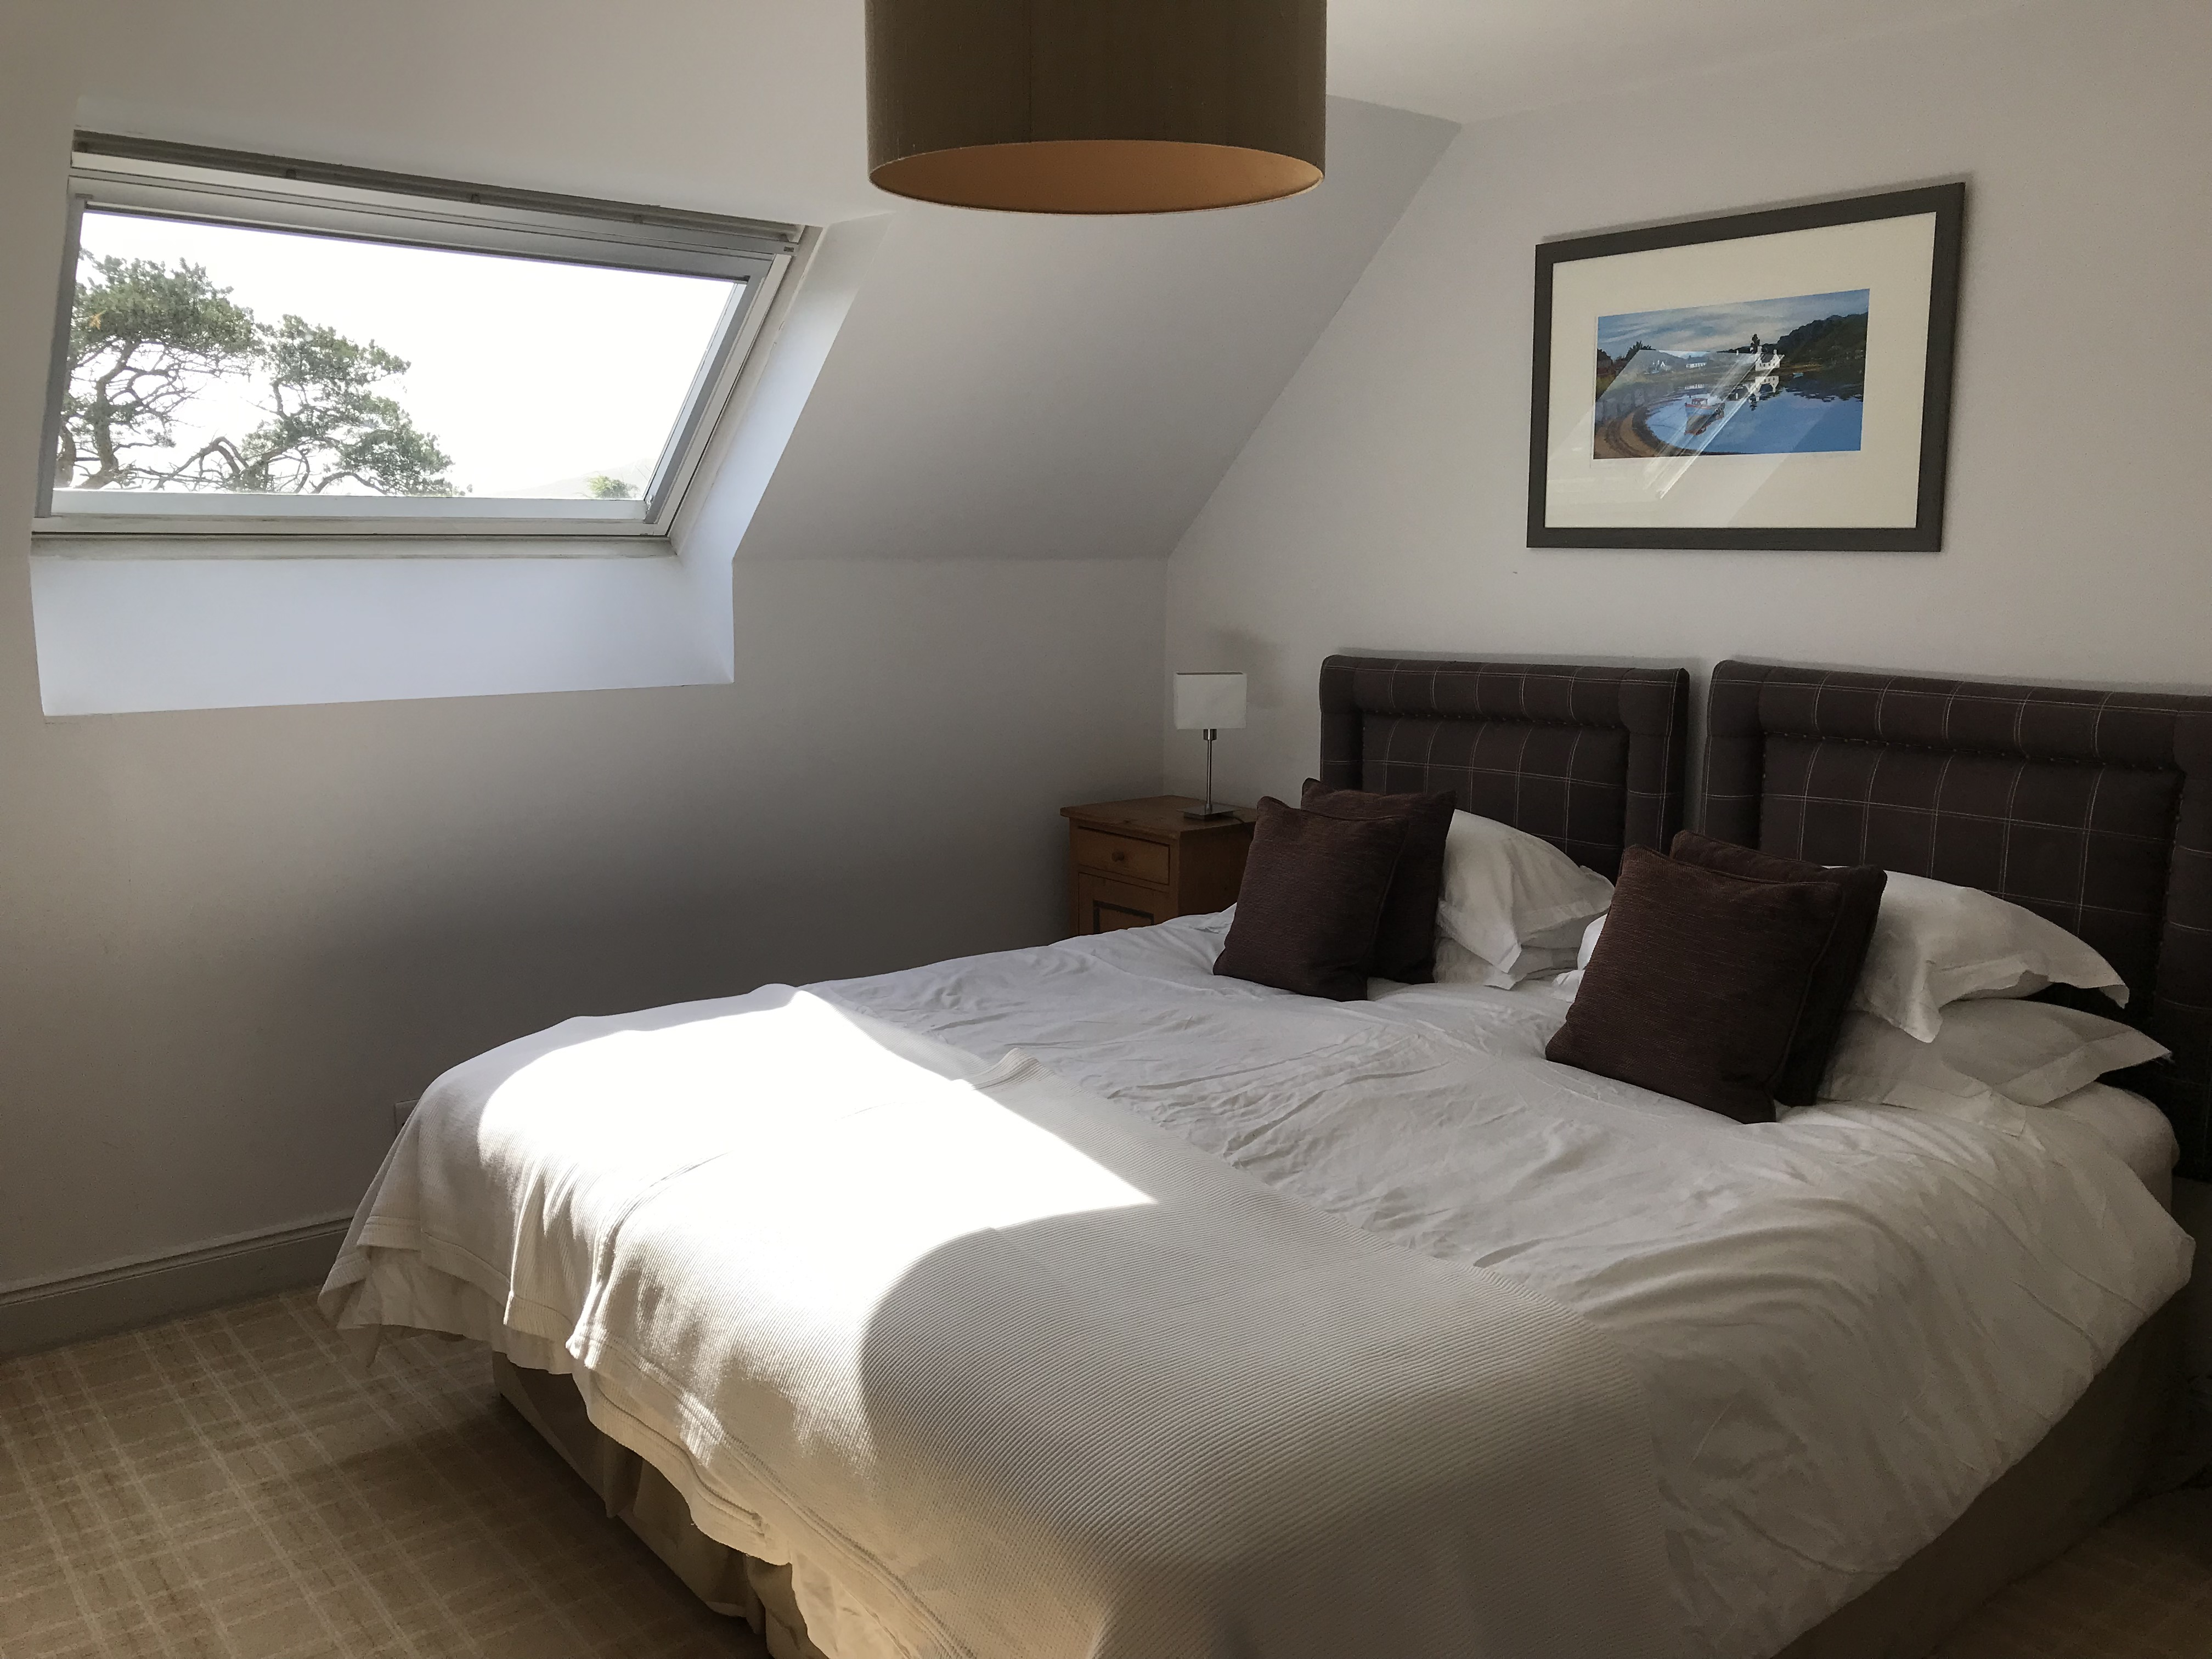 SUPERIOR ROOM WITH A SUPER KING-SIZED BED OR MADE AS A TWIN WITH EN SUITE BATHROOM, WITH SHOWER